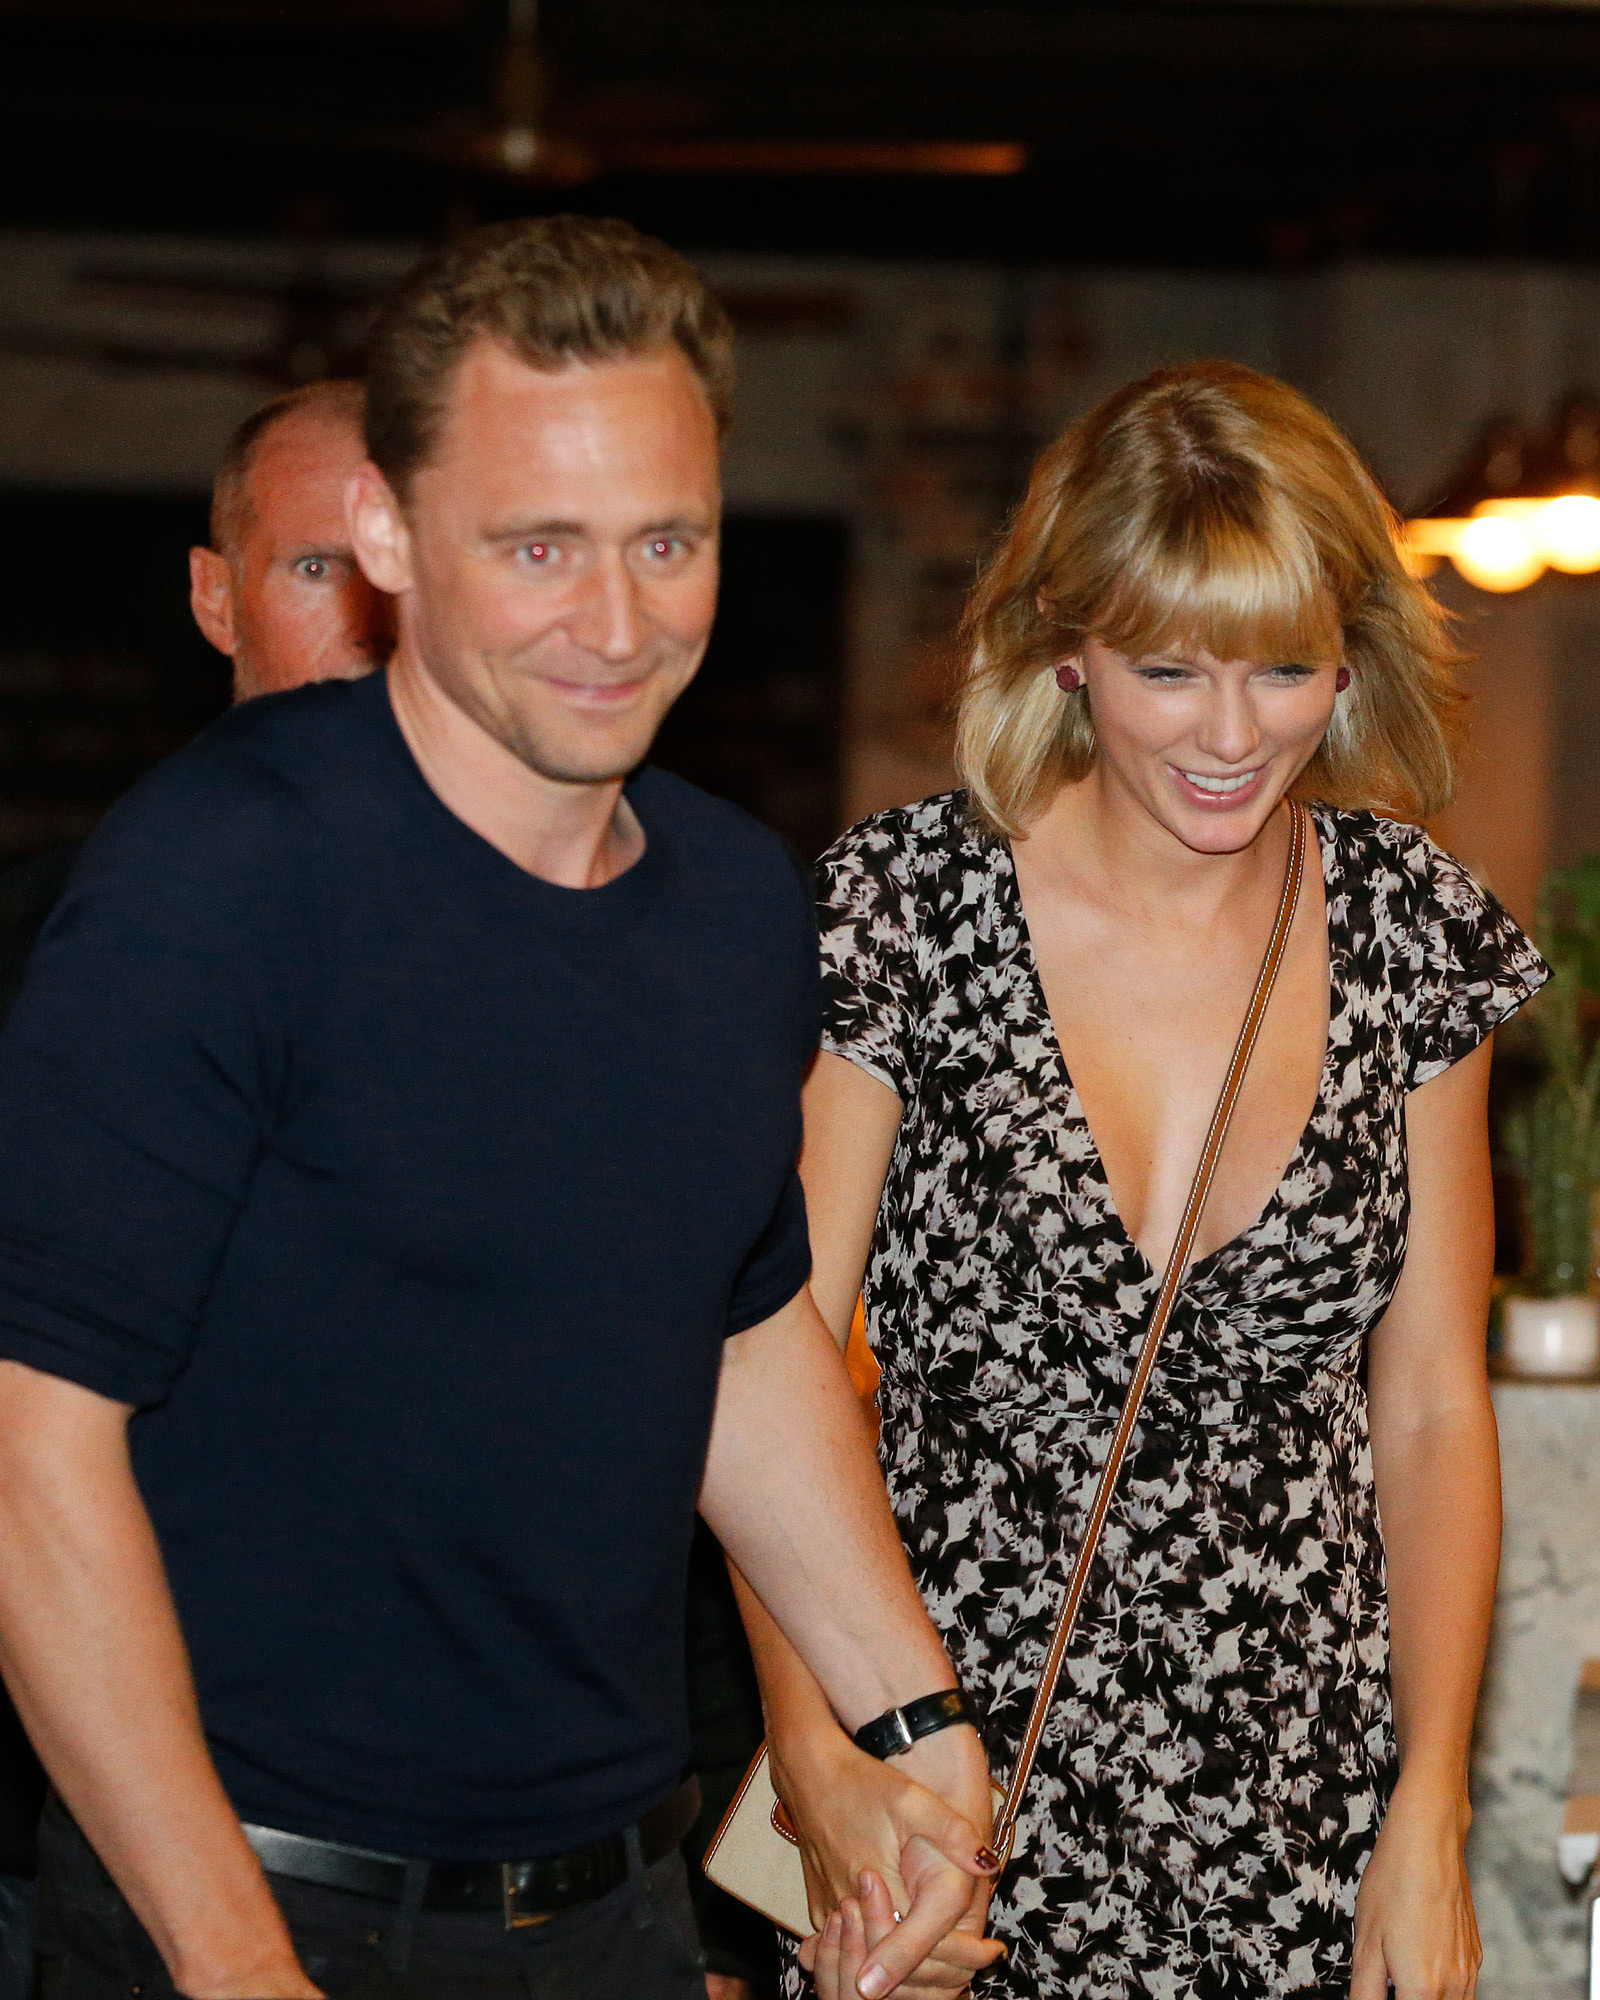 quick-celeb-engagements-taylor-swift-tom-hiddleston-0716.jpg